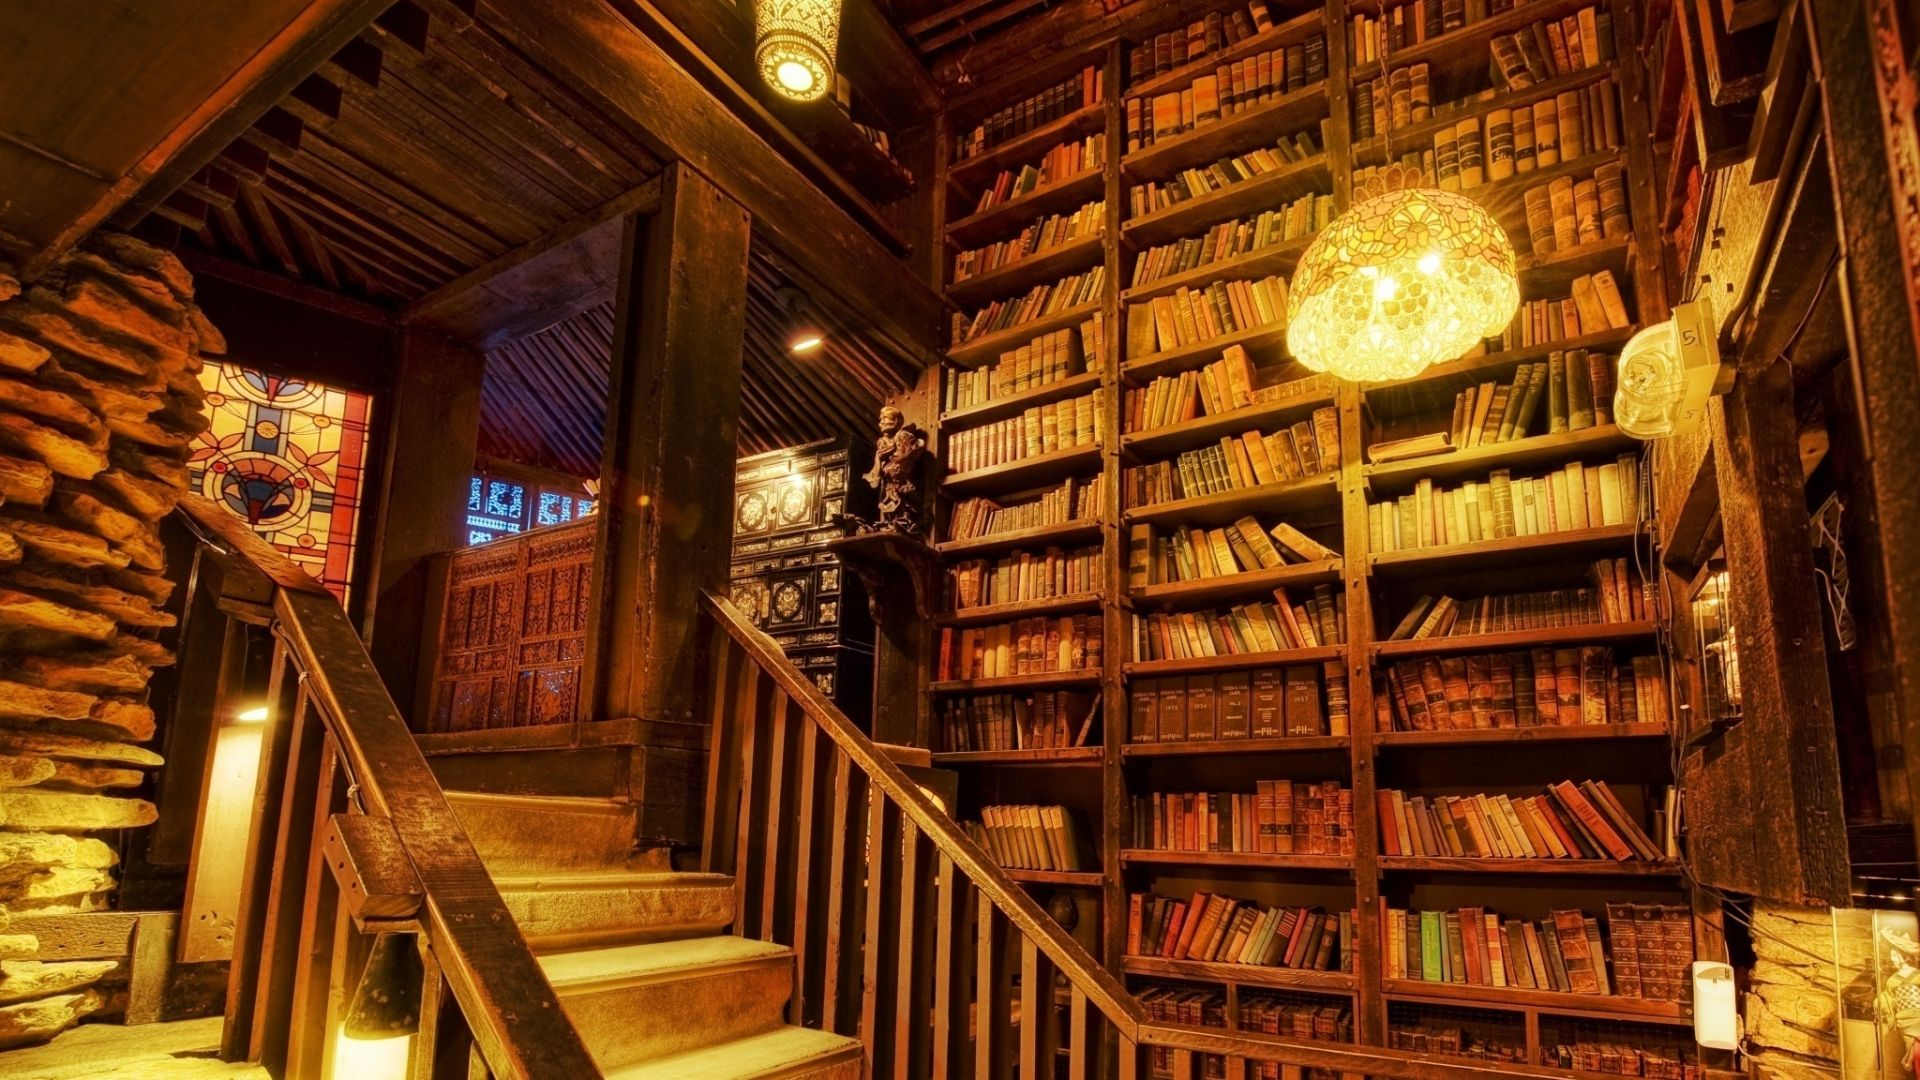 Images About Books Wallpaper On Pinterest Lobsters 1280×768 Books Wallpaper (34 Wallpapers